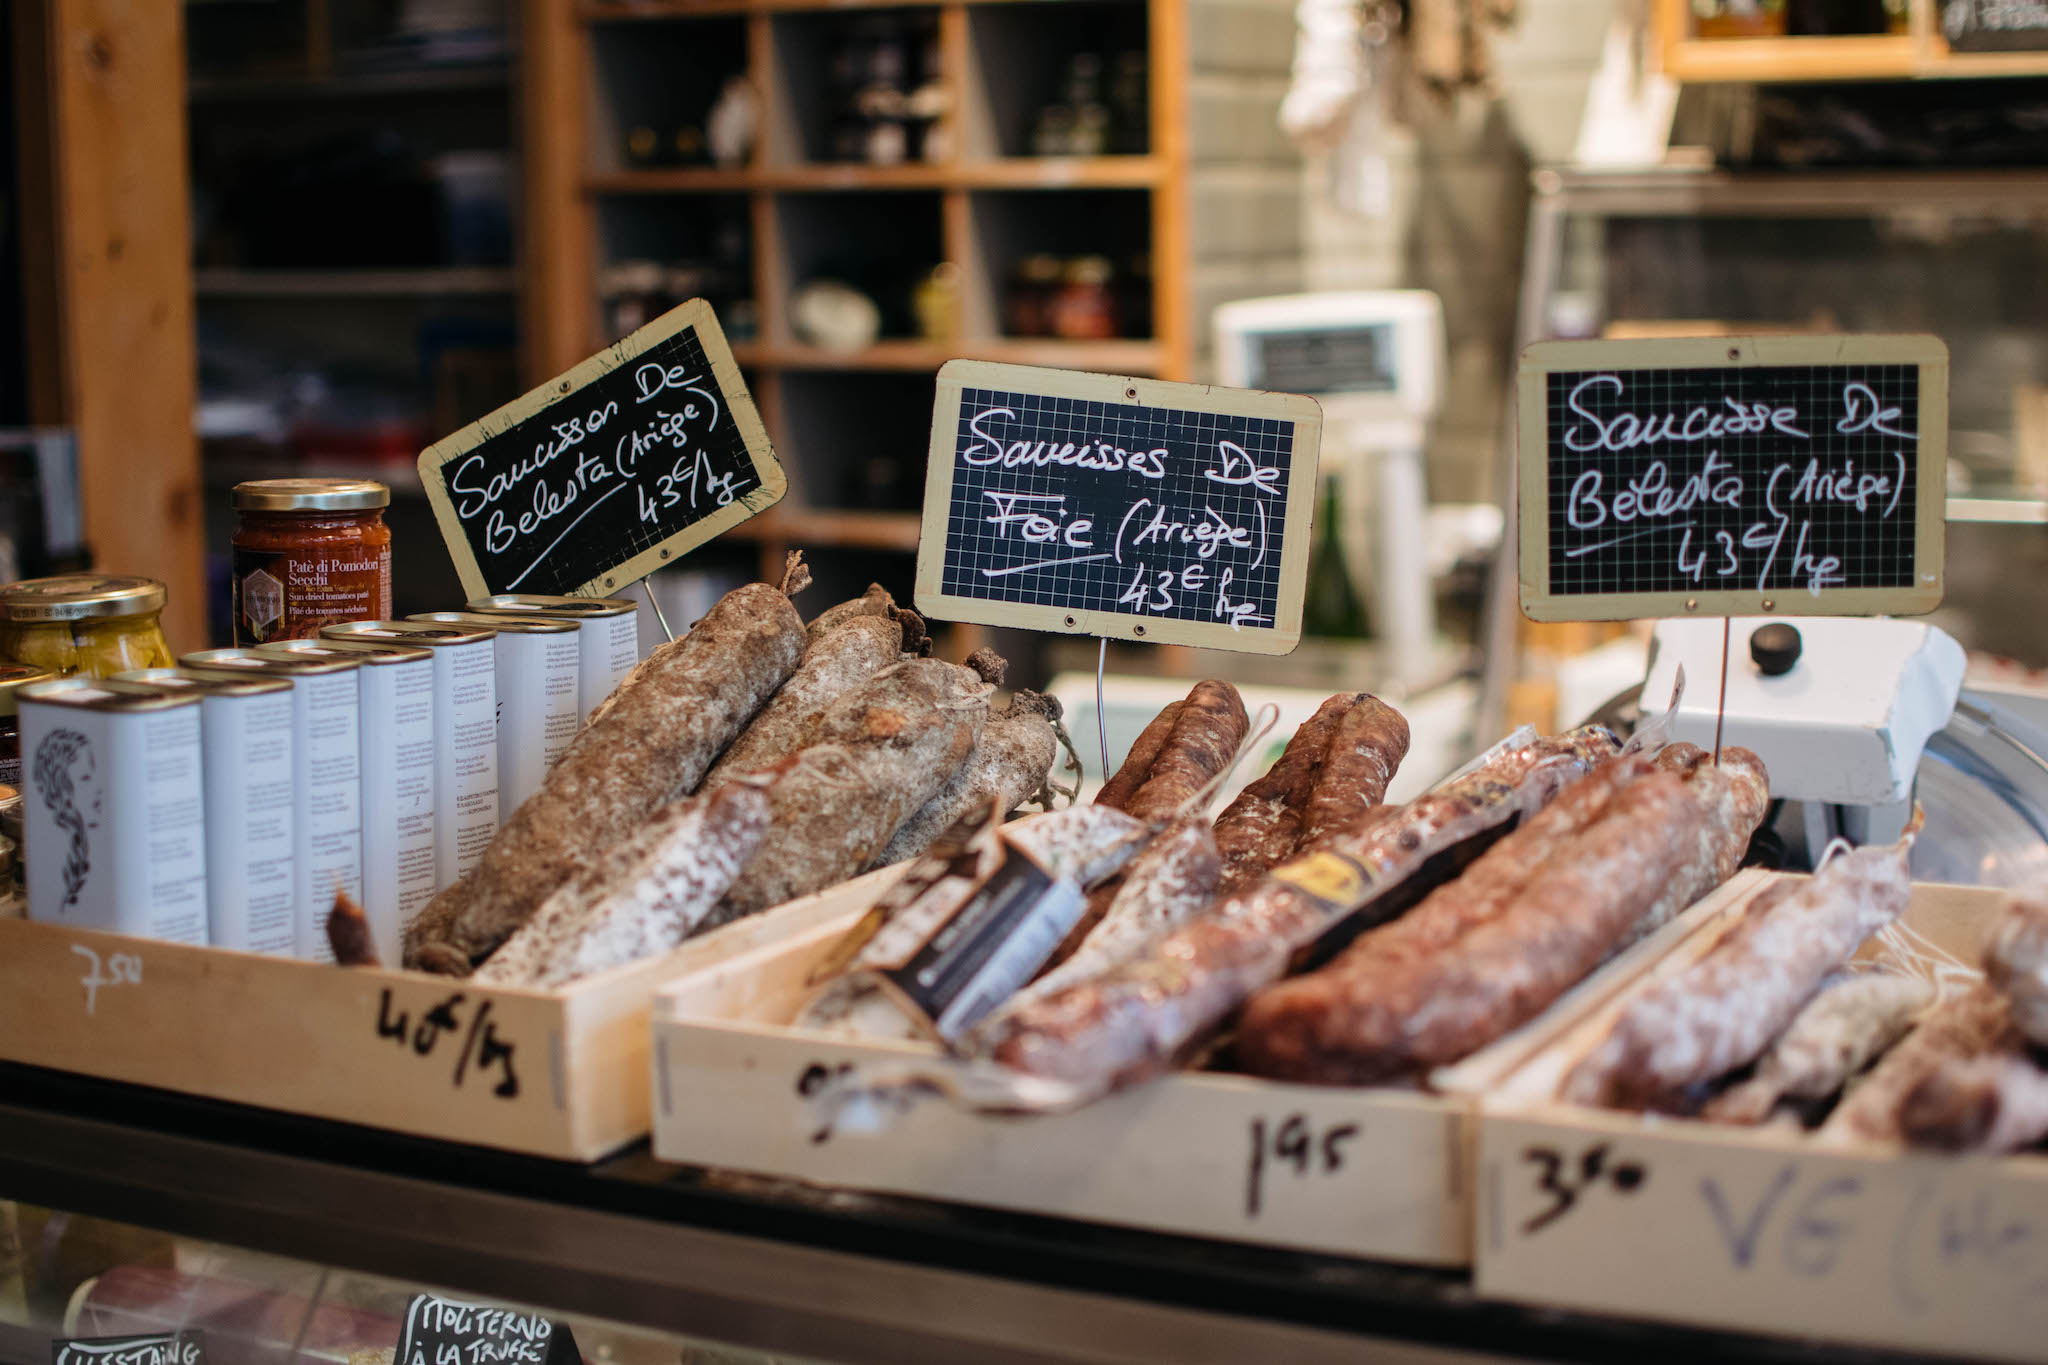 A selection of French hand-made saucisson sausage in a shop in Paris.